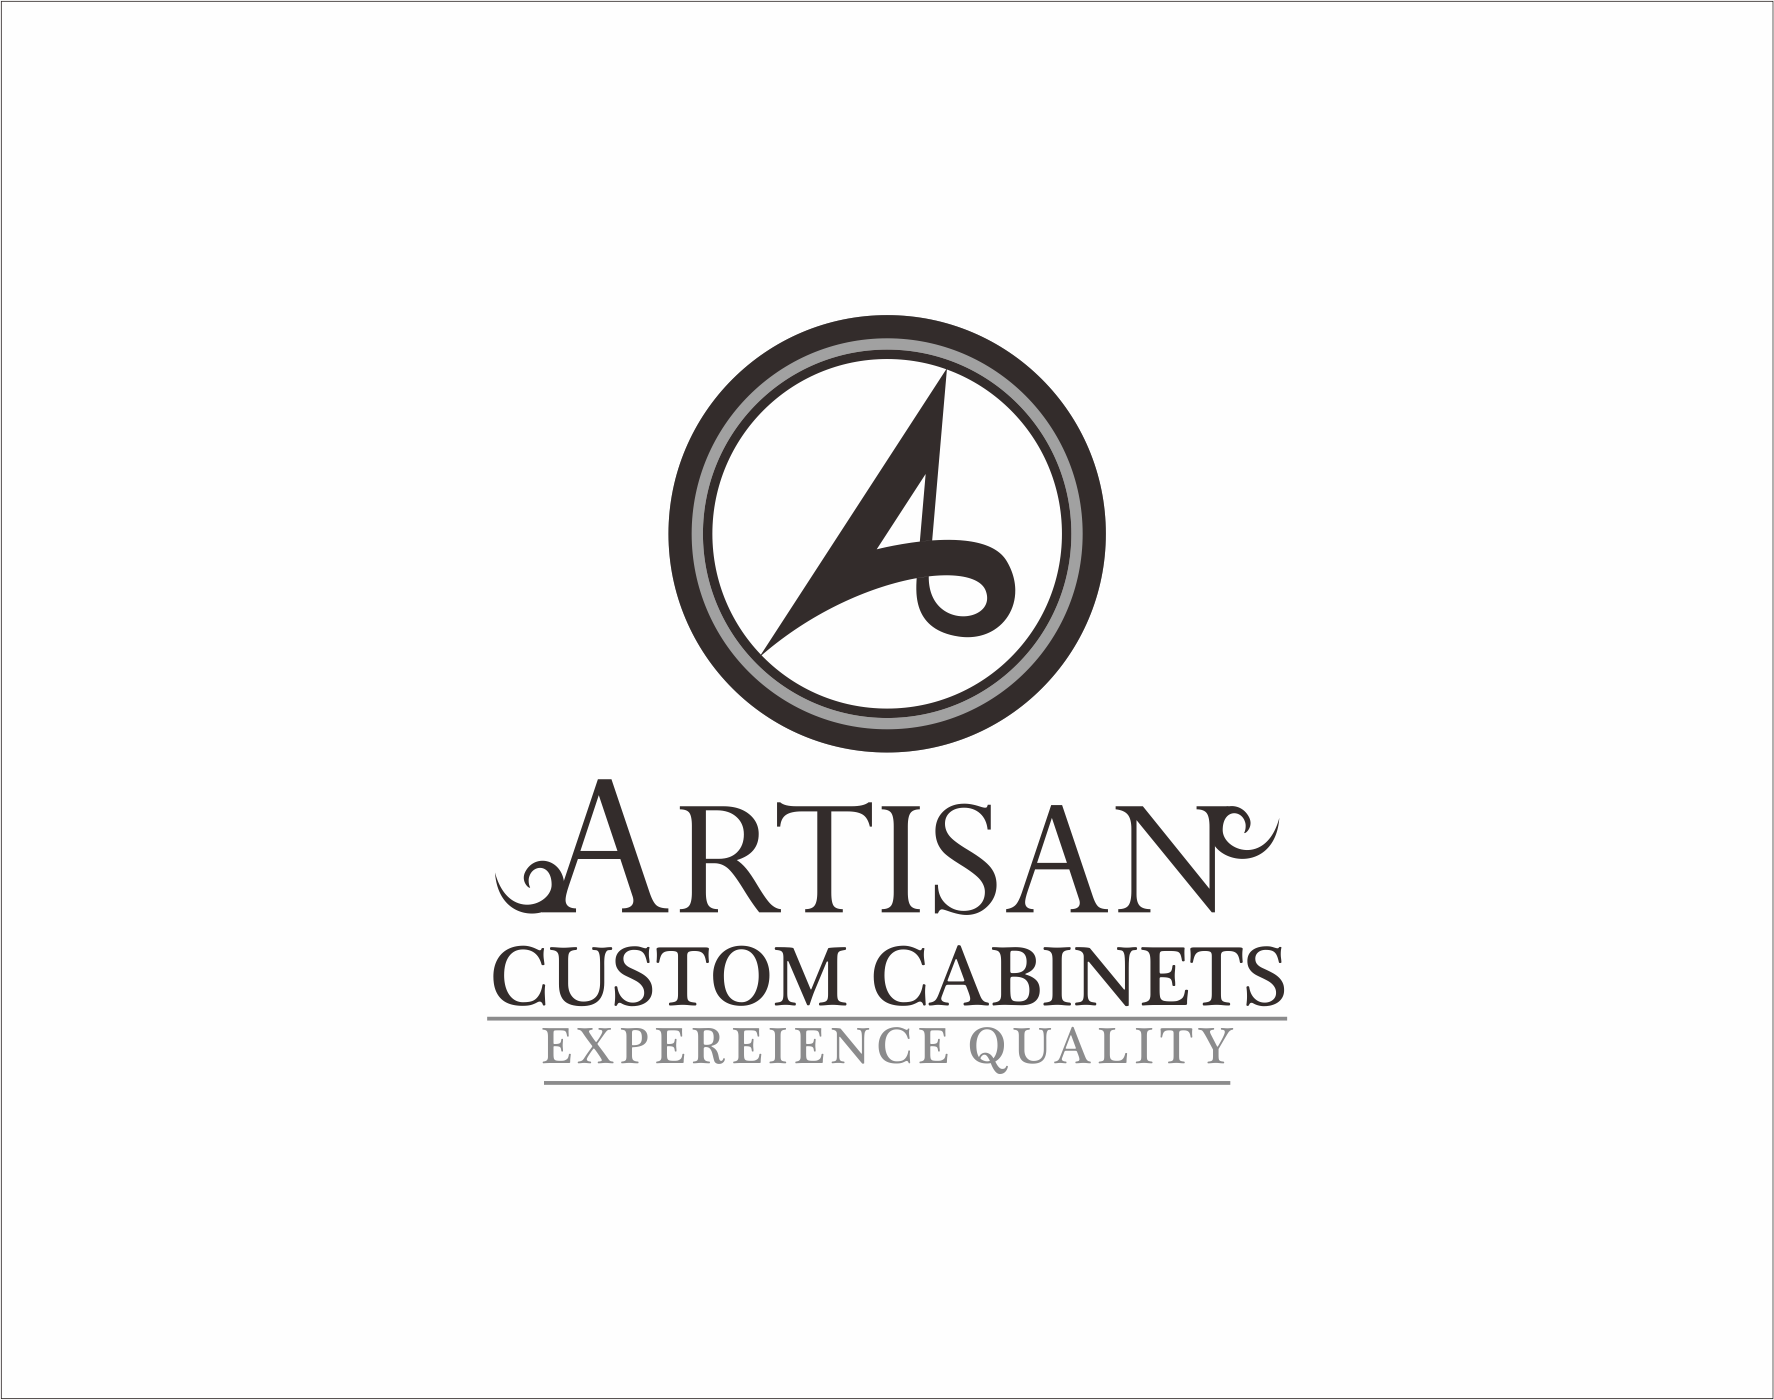 Delicieux Creative Logo Design For Artisan Custom Cabinets